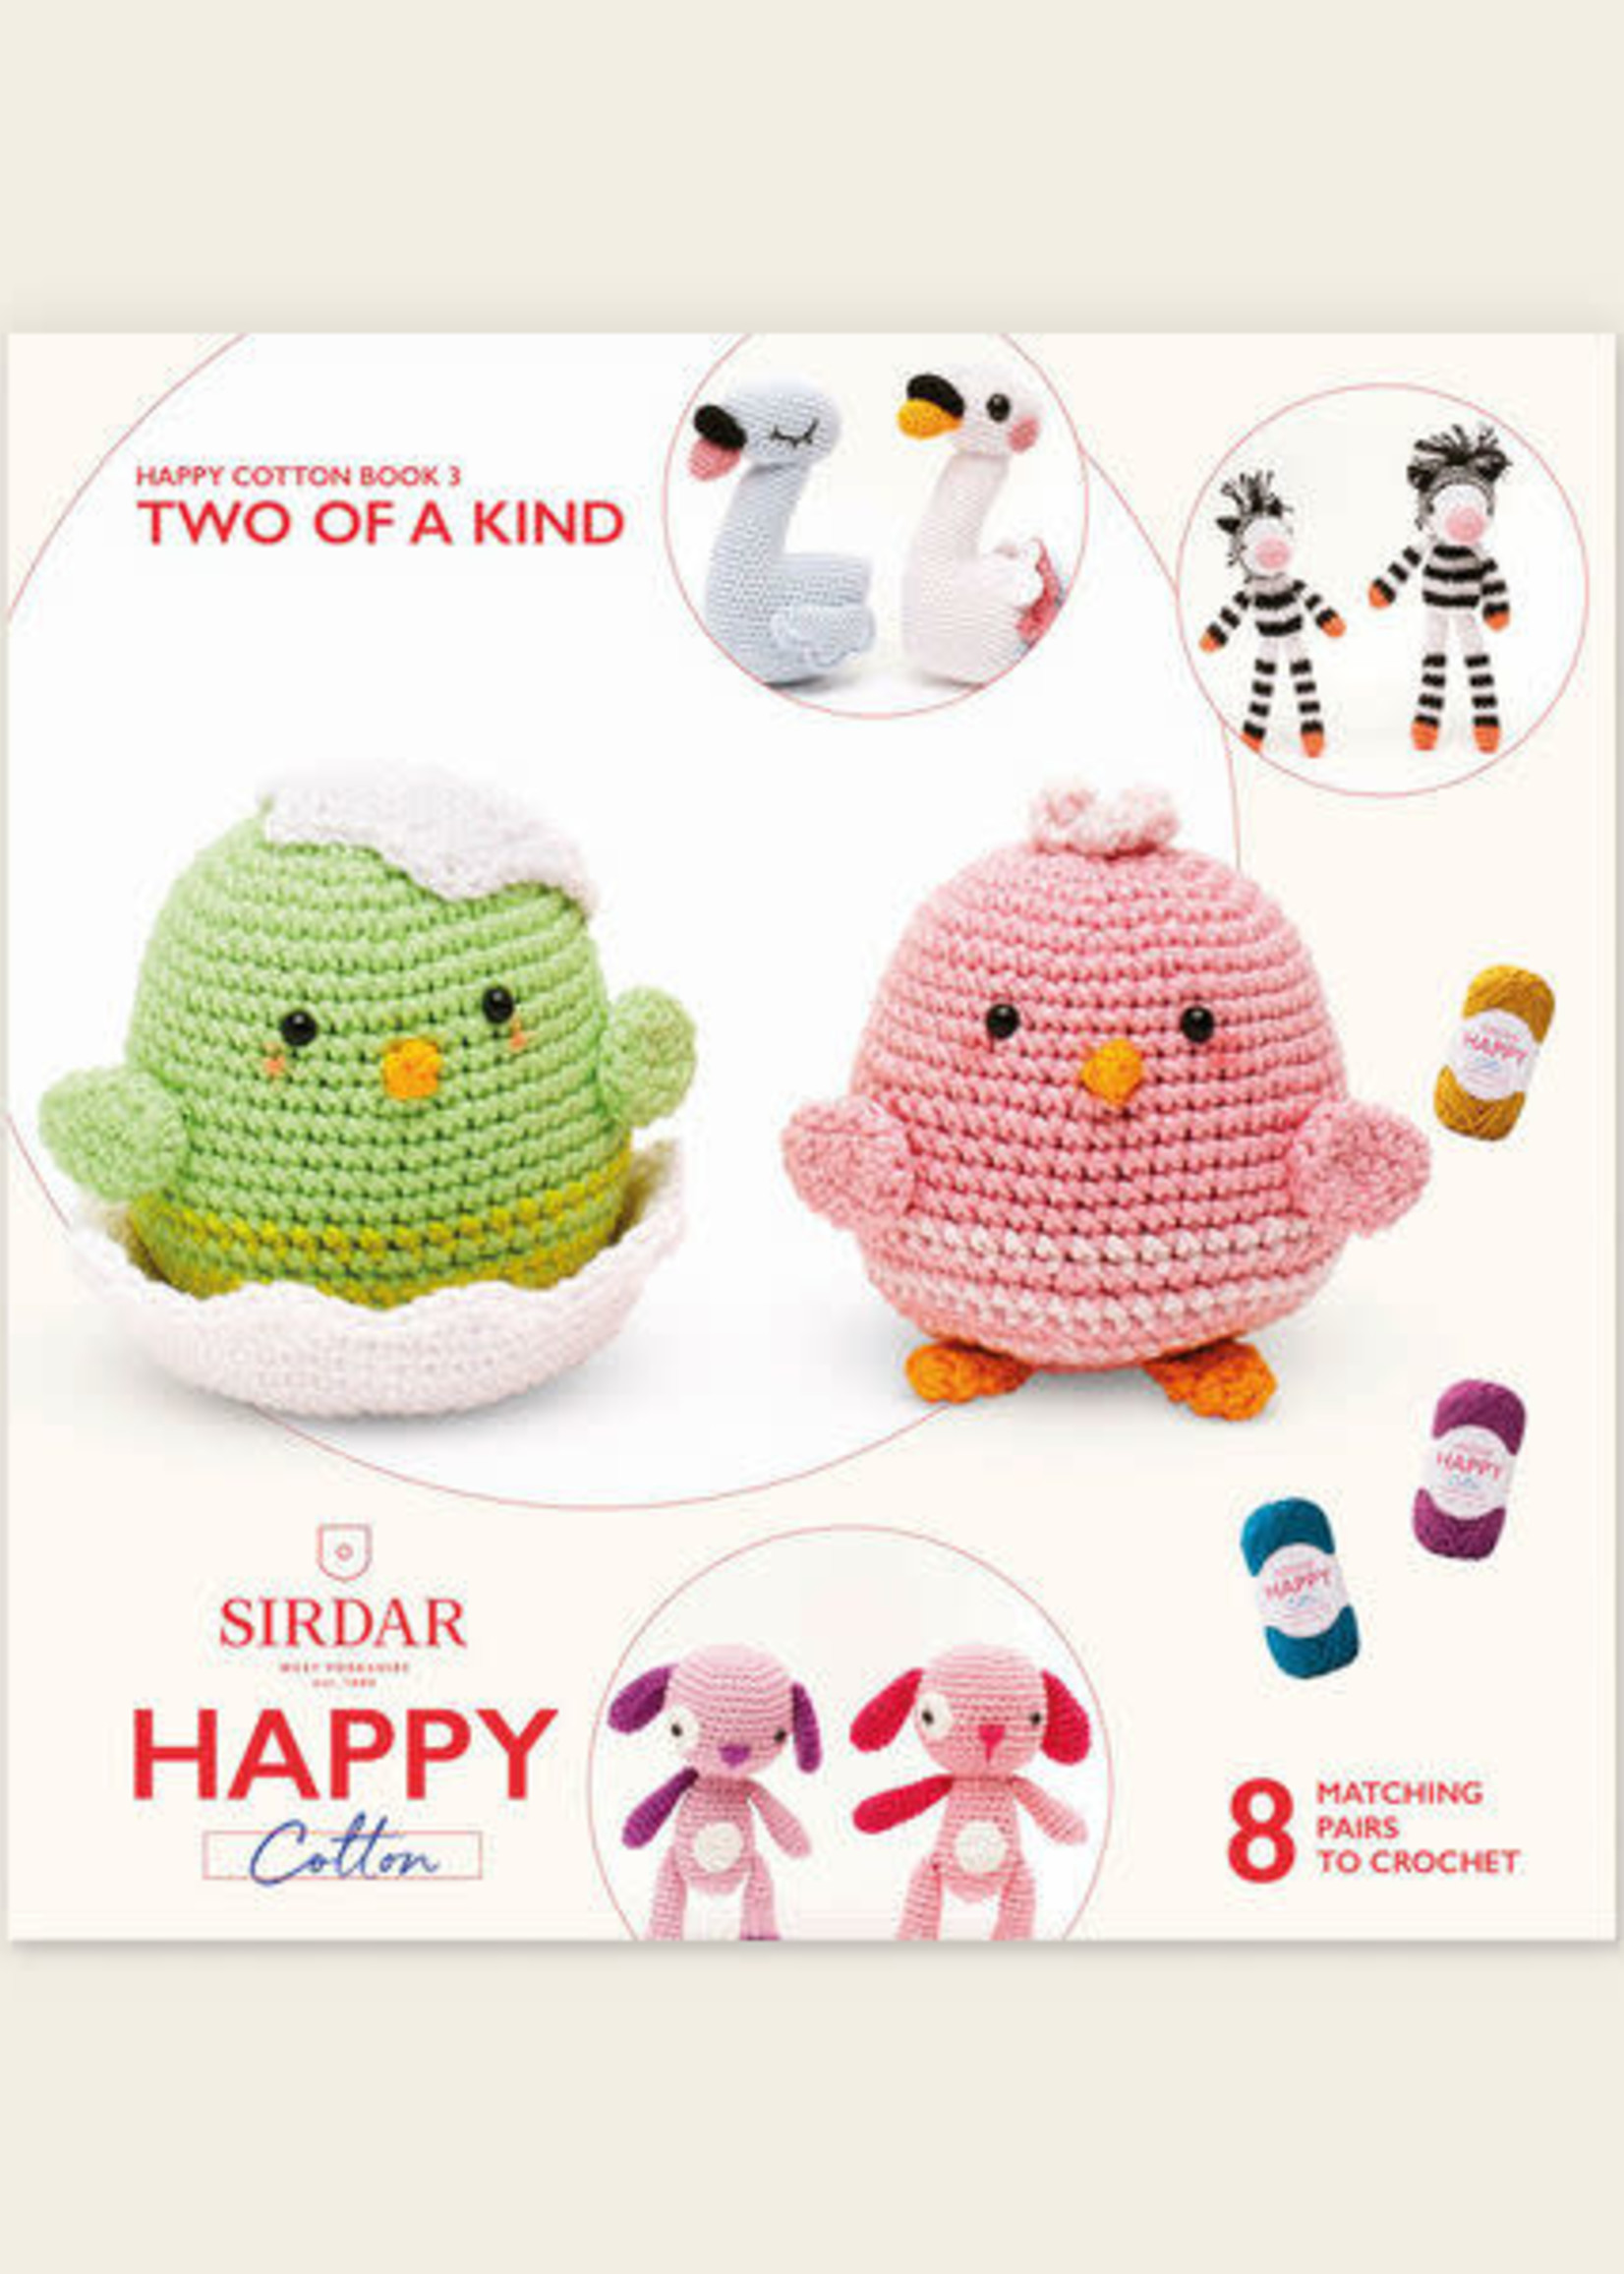 Sirdar Sirdar Happy Cotton Book 3 Two of a Kind